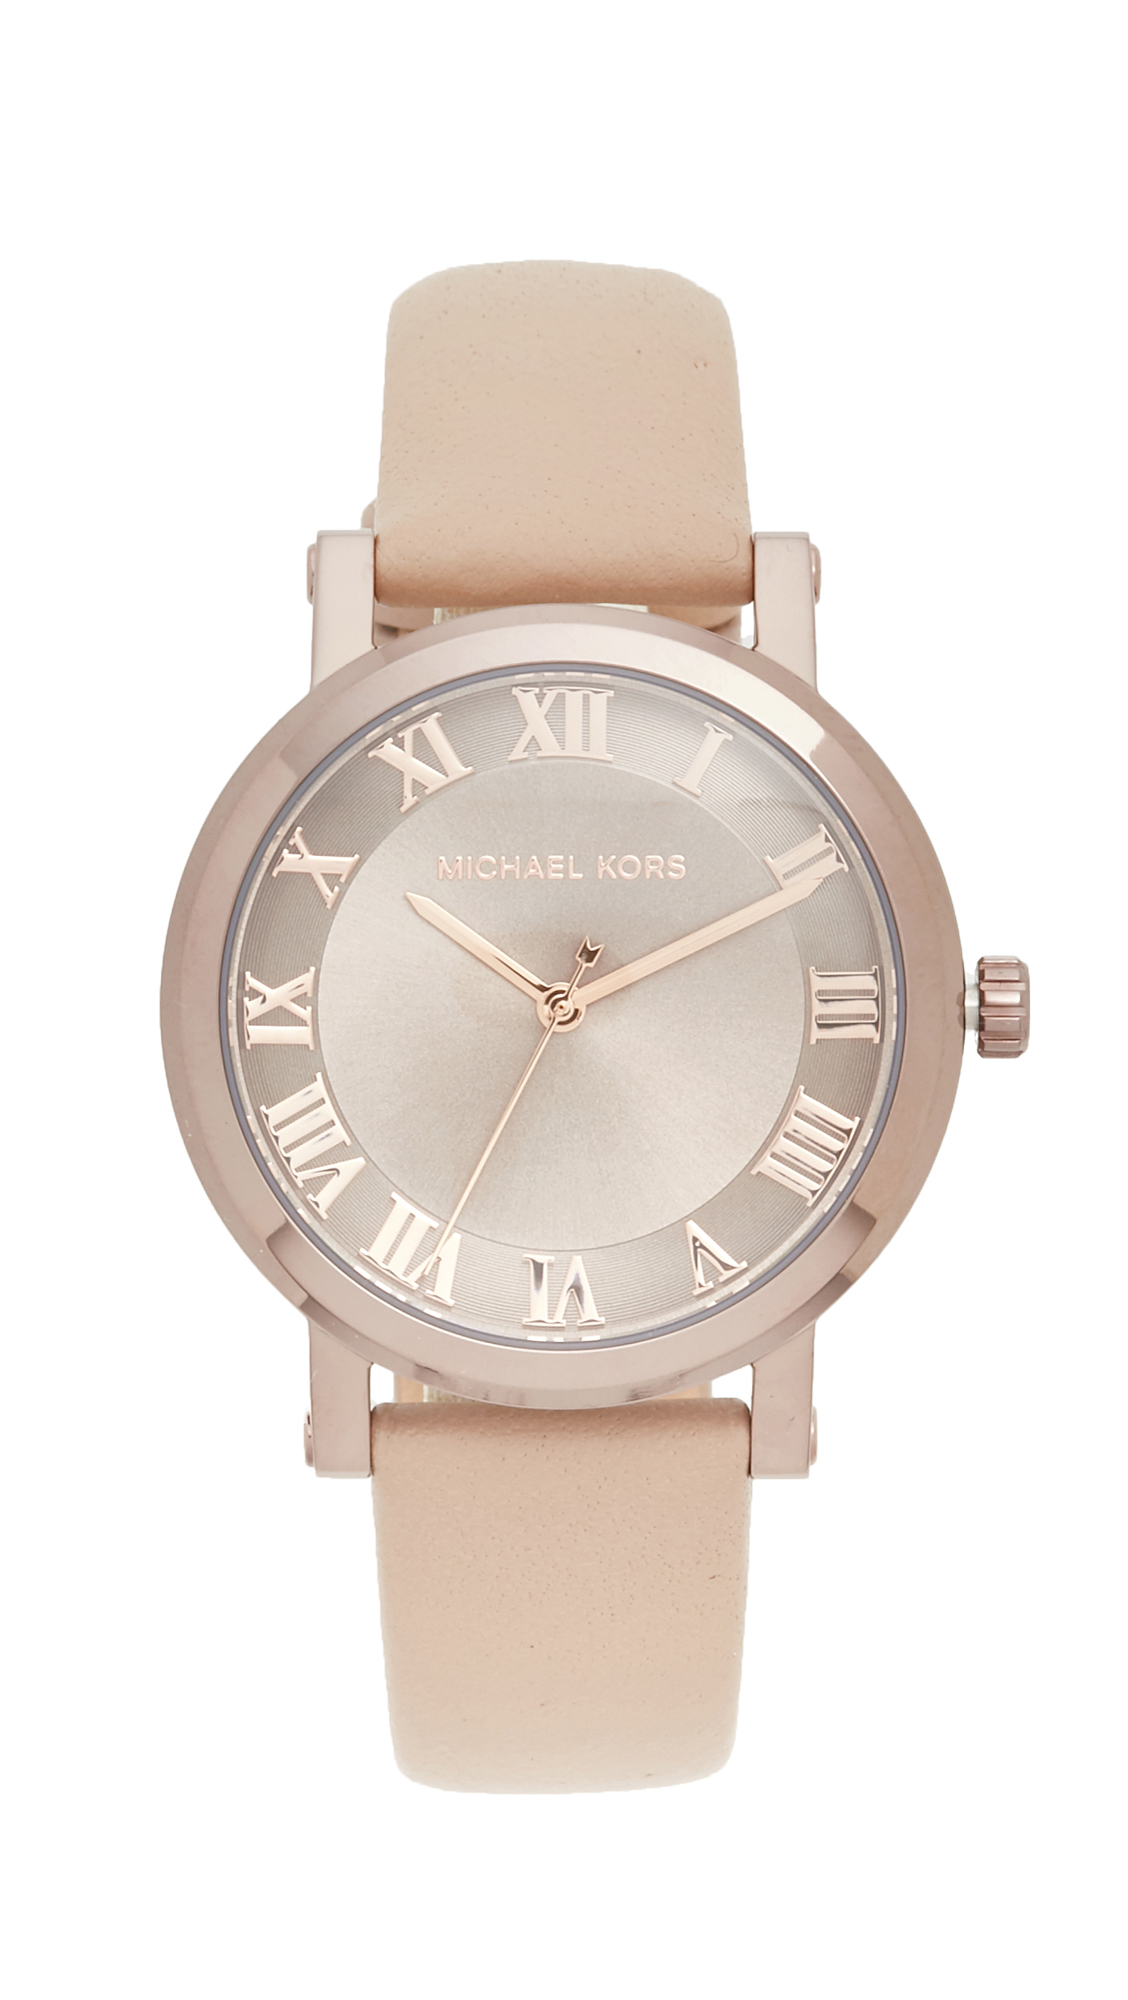 michael kors female michael kors norie watch sablelatte